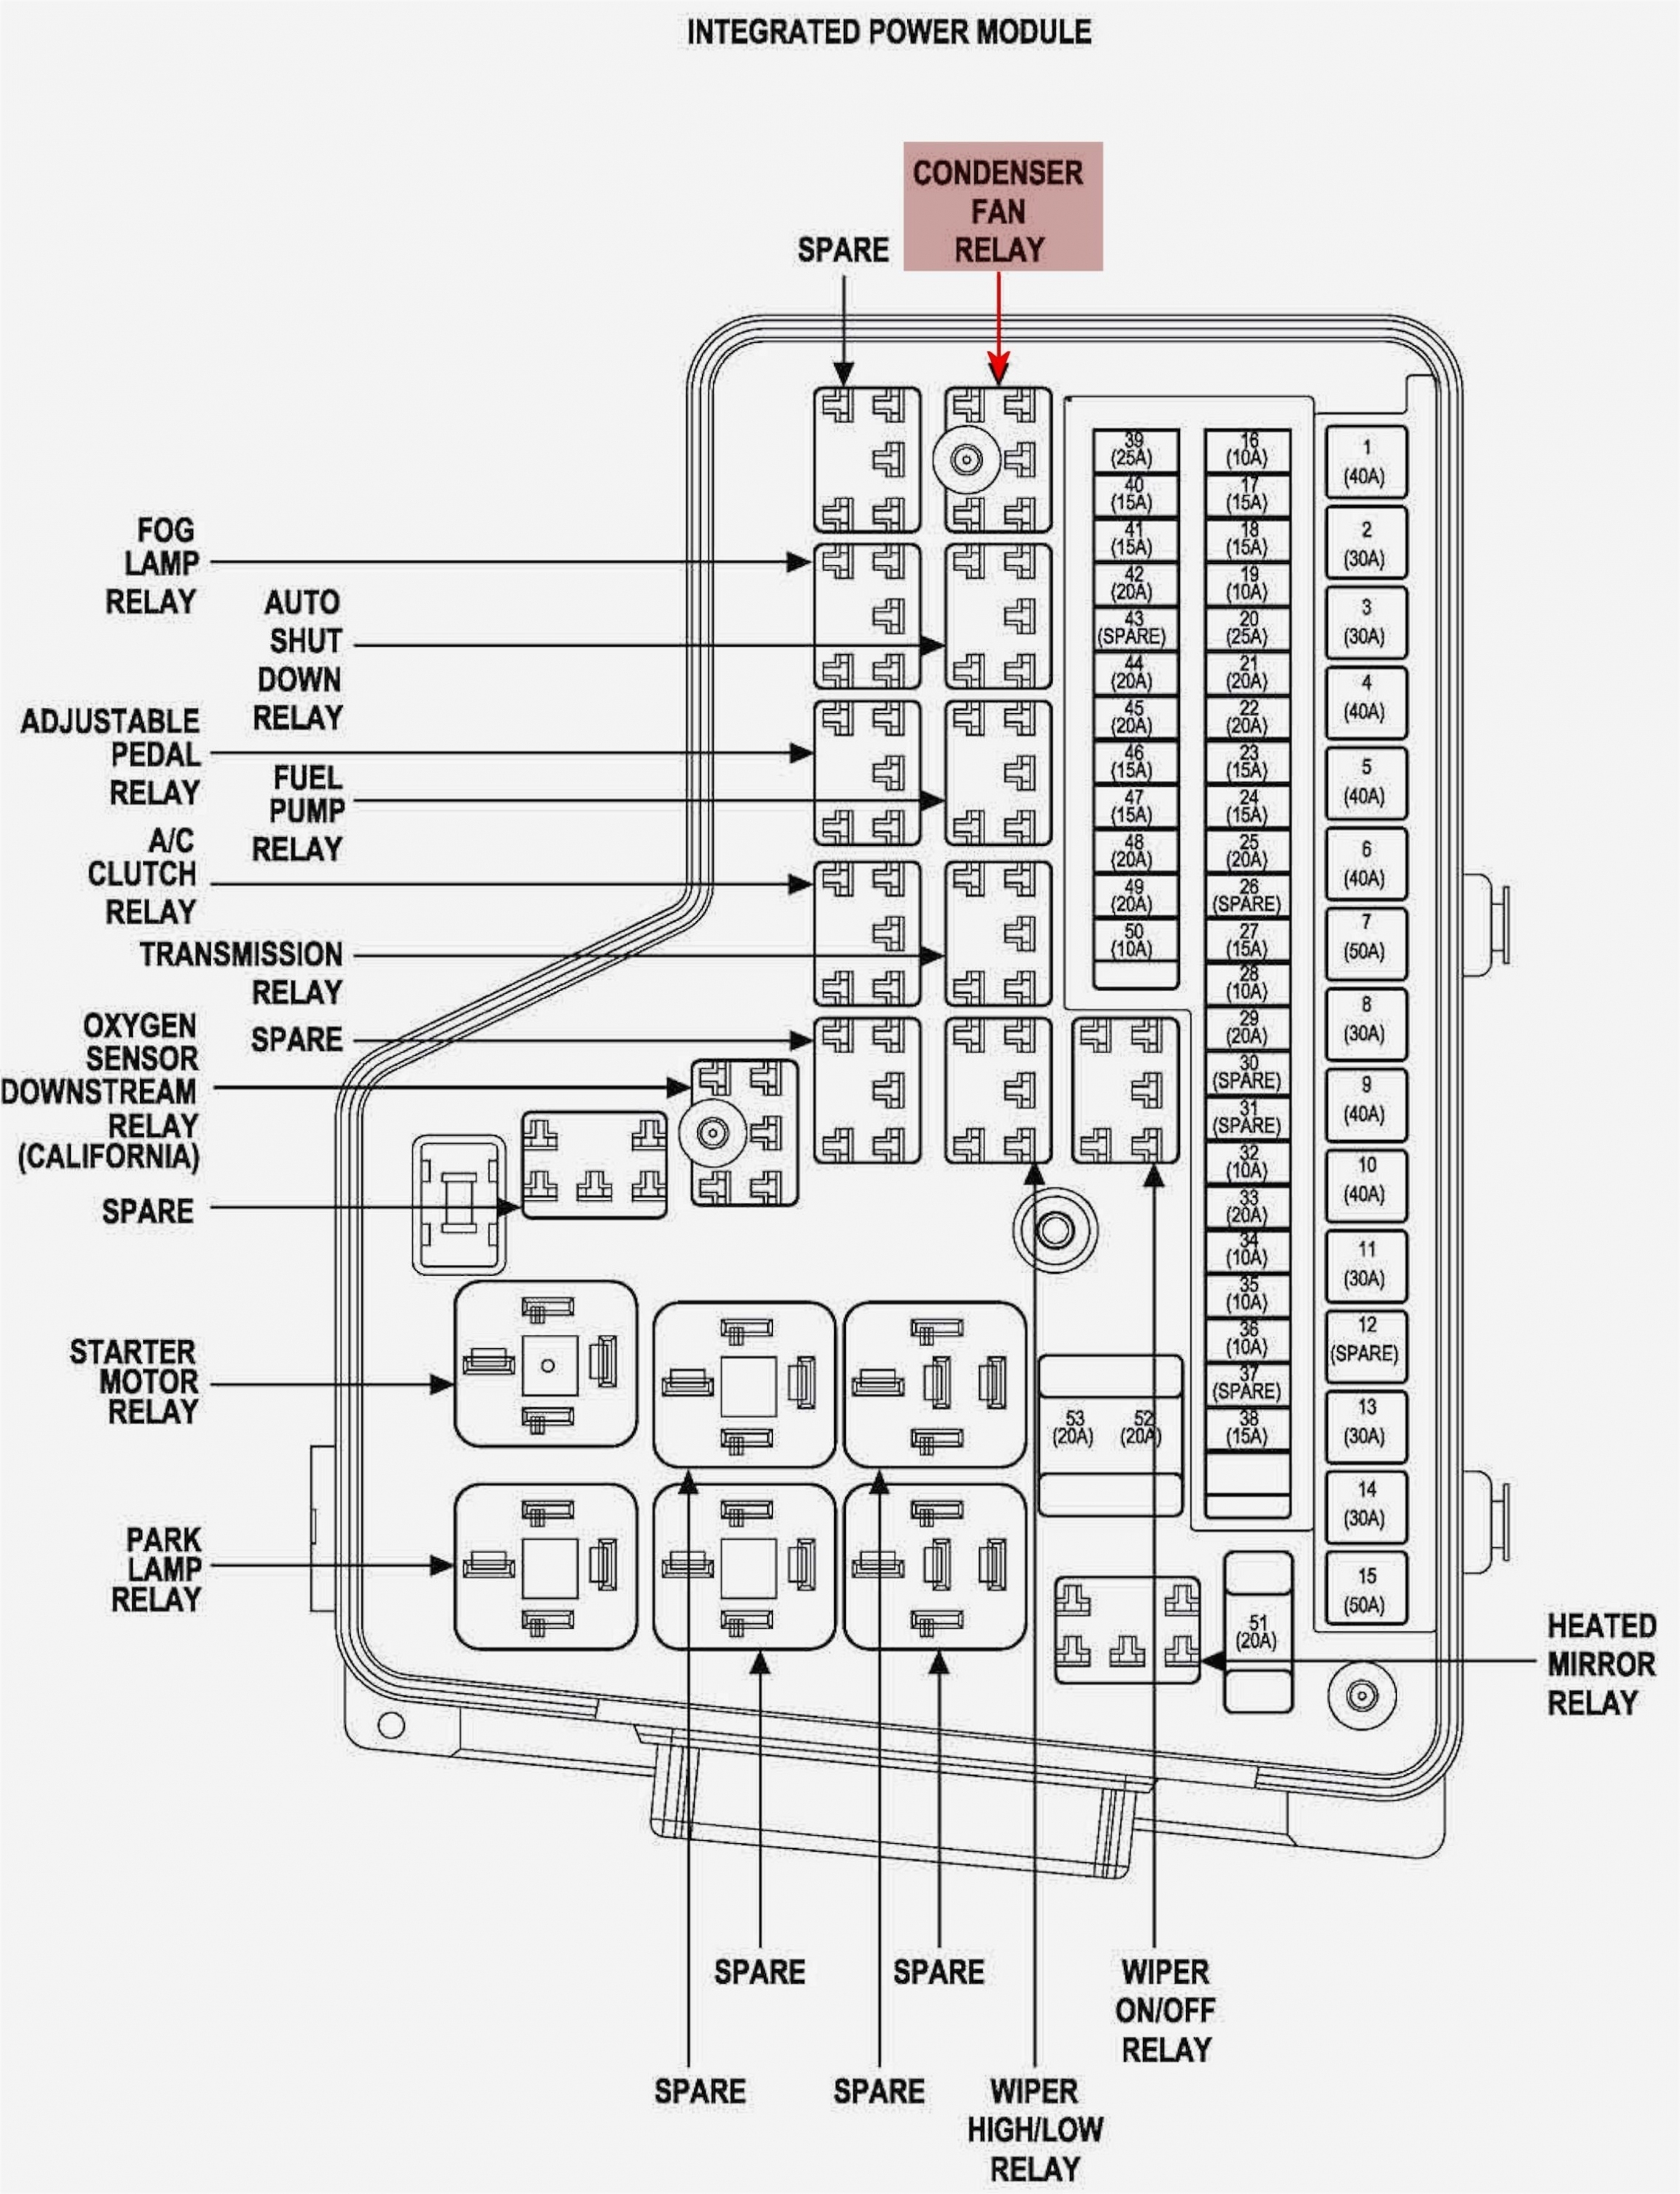 1998 dodge ram fuse diagram wiring diagram de rh 14 klhg juliusdoerner de  2009 dodge charger sxt fuse box diagram